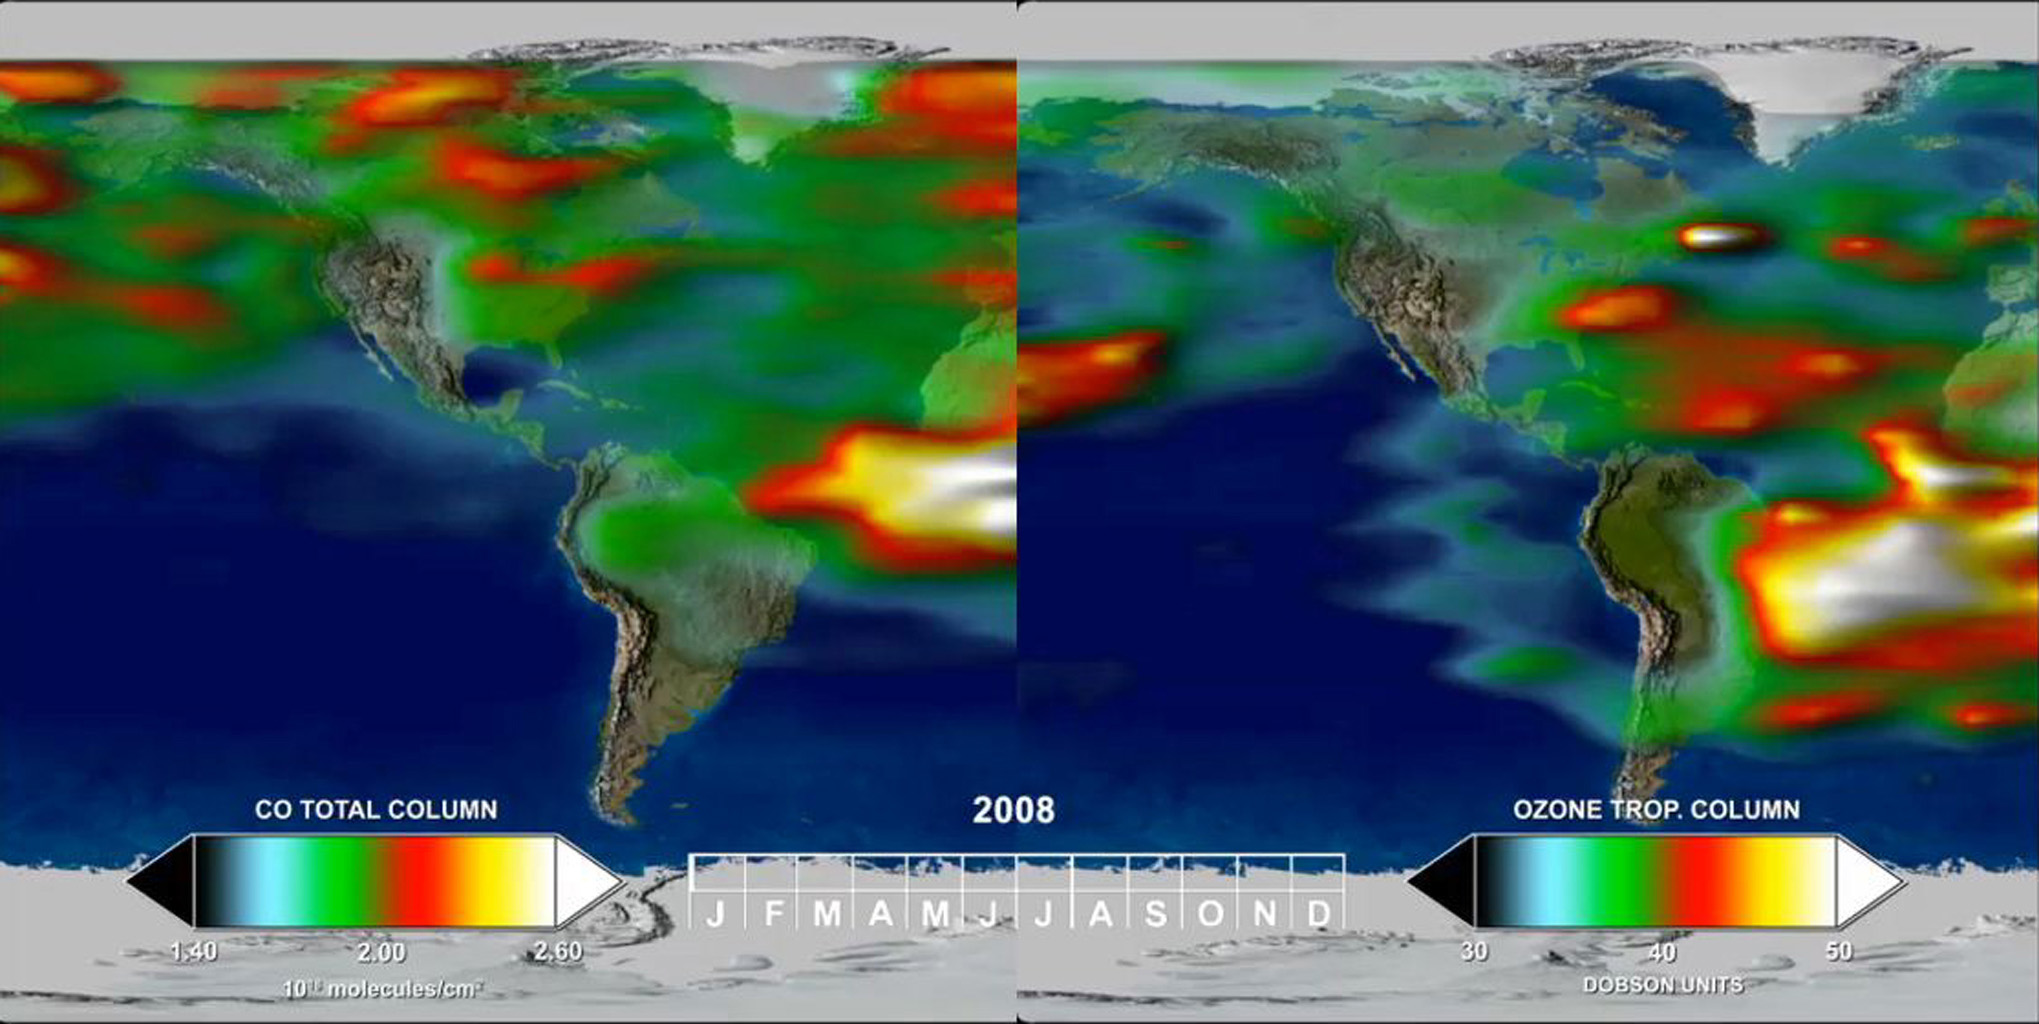 This frame from a time series, from one year of Tropospheric Emission Spectrometer (TES) measurements, shows how powerful the TES data are for understanding emissions, chemistry, and transport in the troposphere.